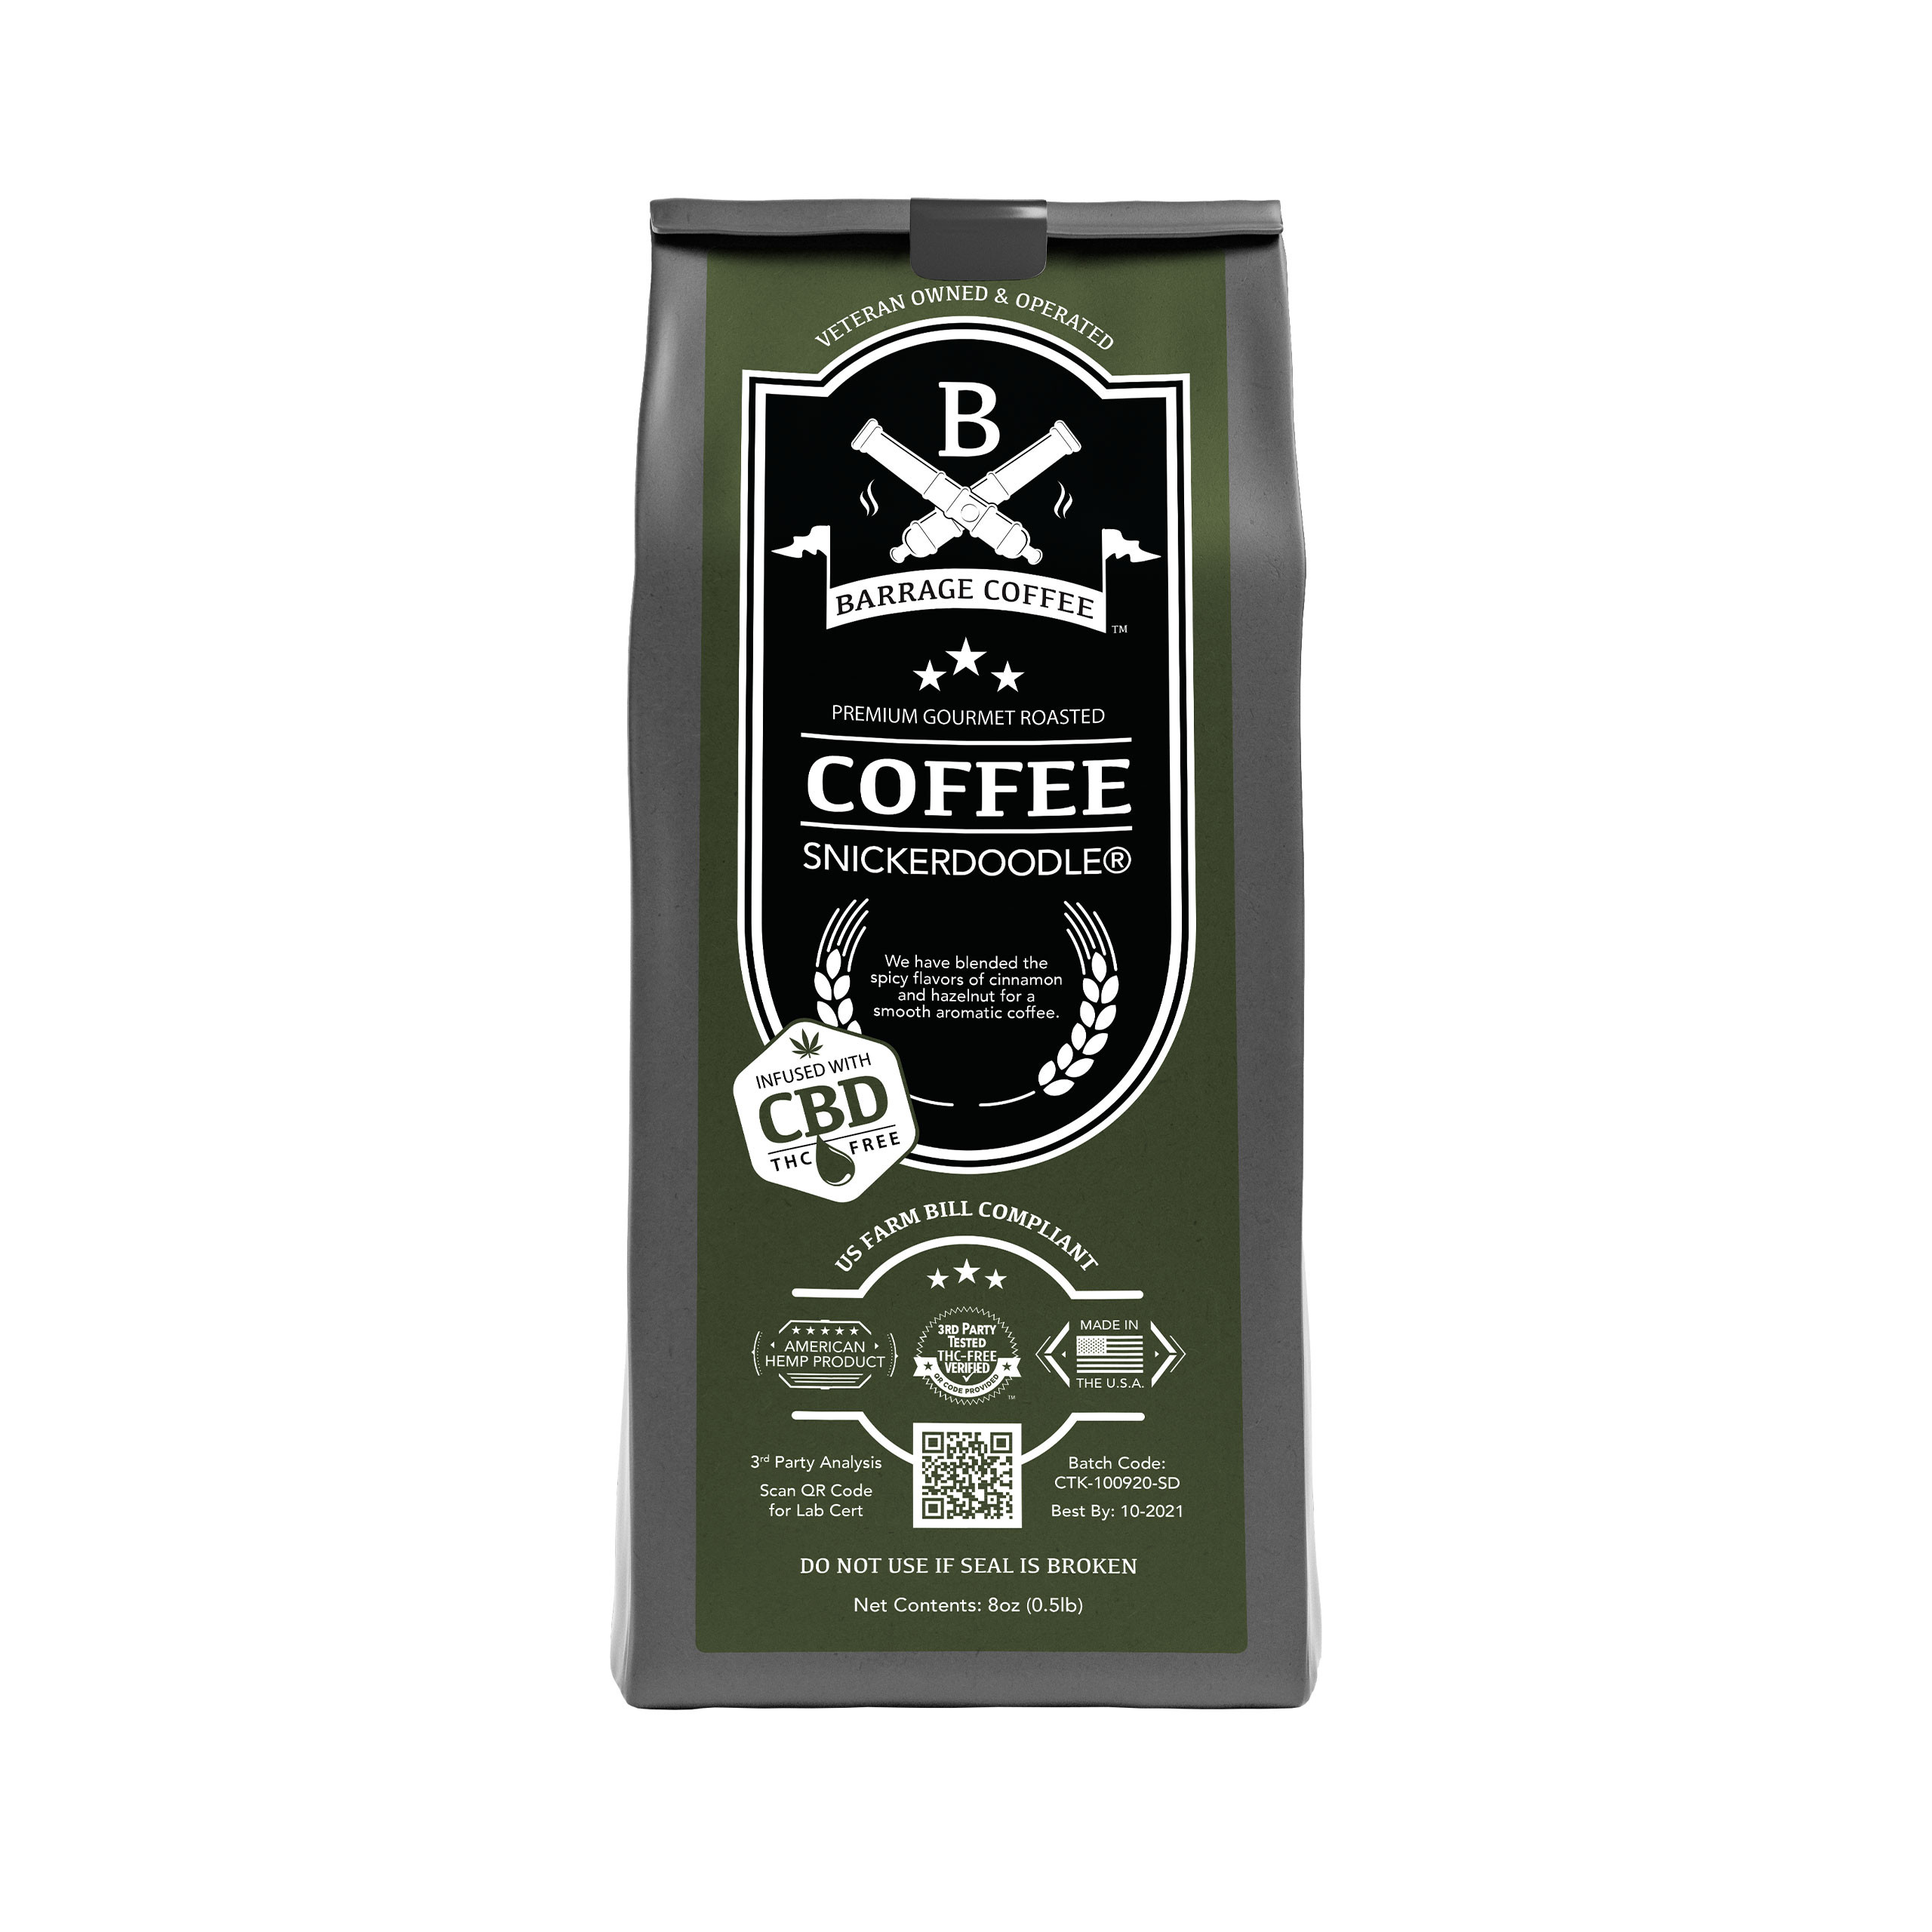 Barrage Coffee™ Snickerdoodle®  CBD Infused Coffee